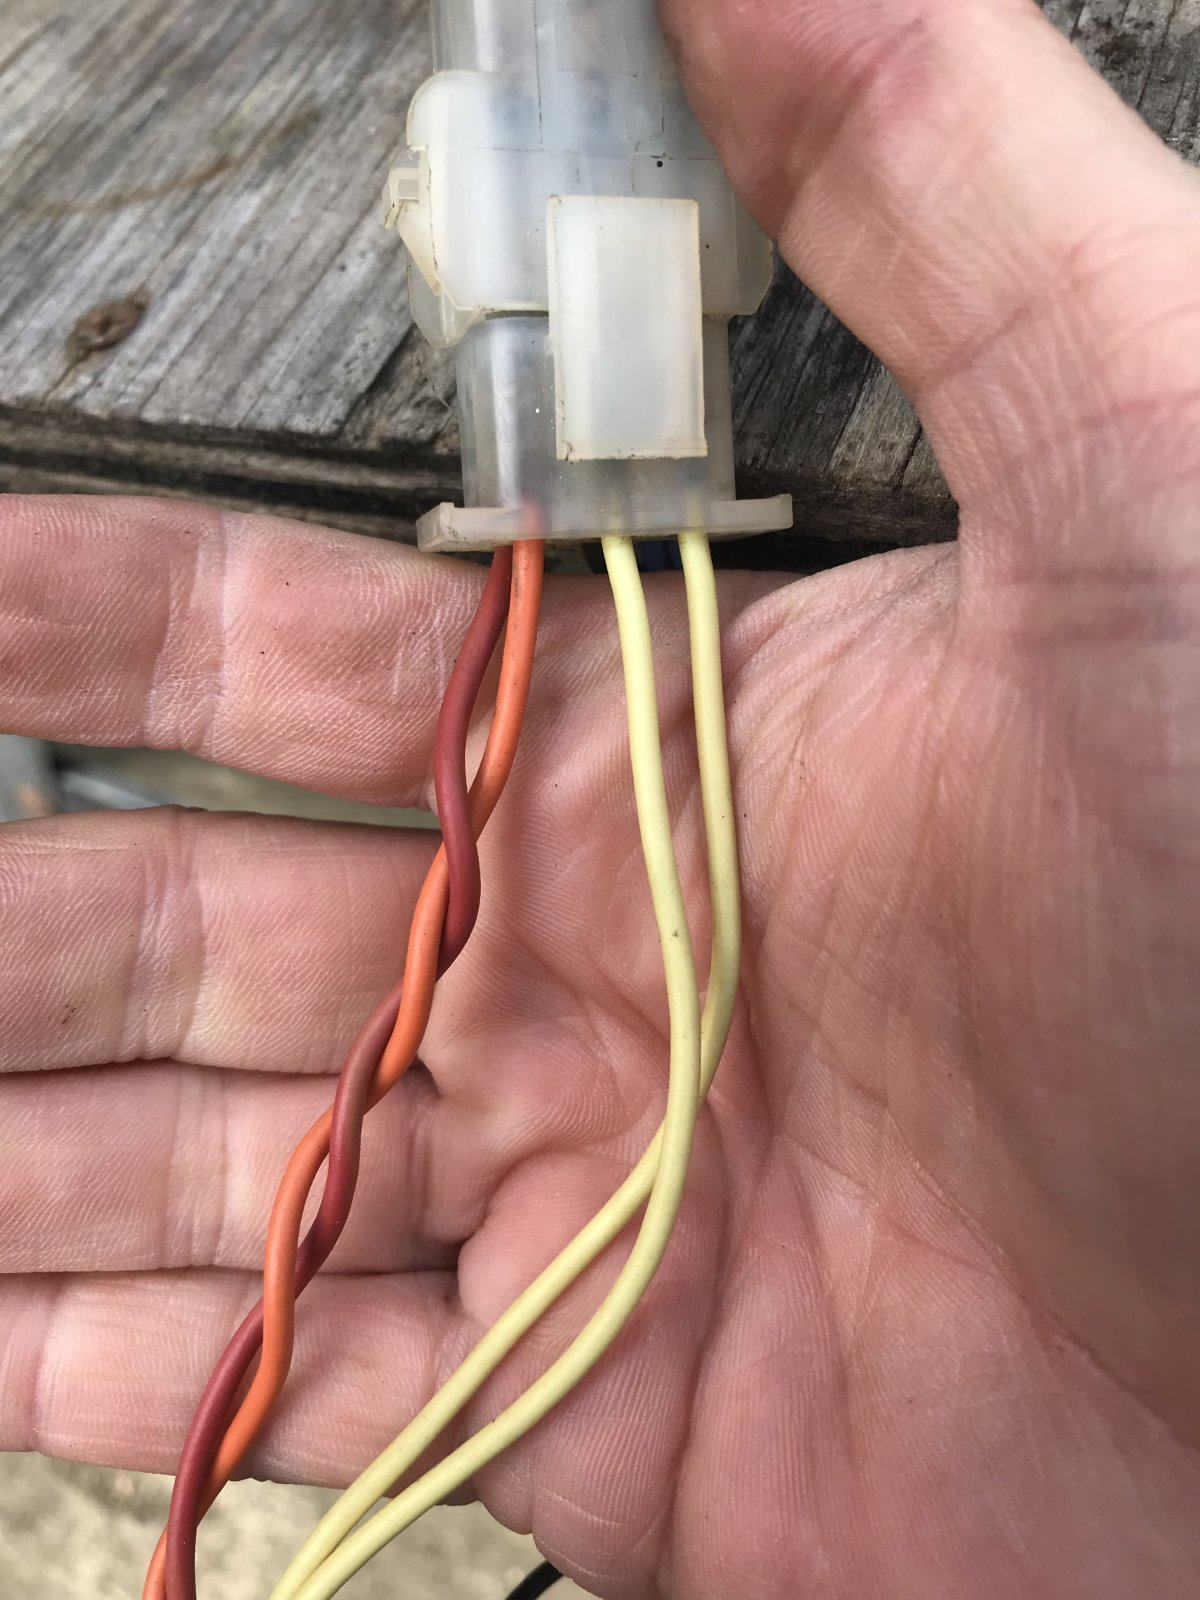 Repower Rewiring Help Needed  Kaw To Kohler